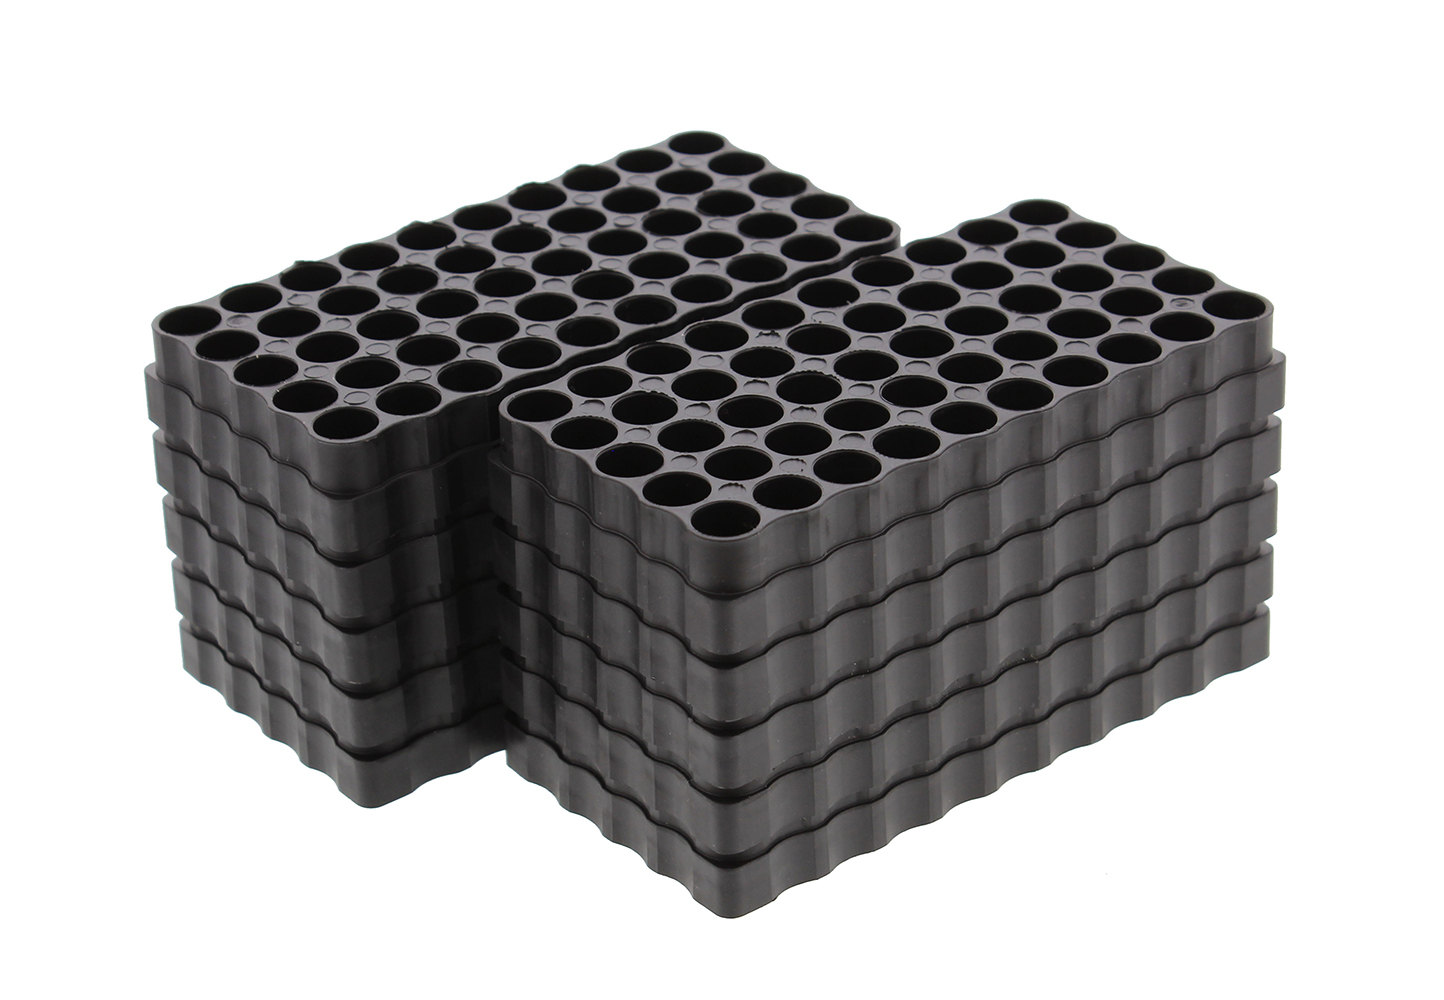 50 Round Universal Reloading Ammo Tray Loading Blocks by Redneck Convent